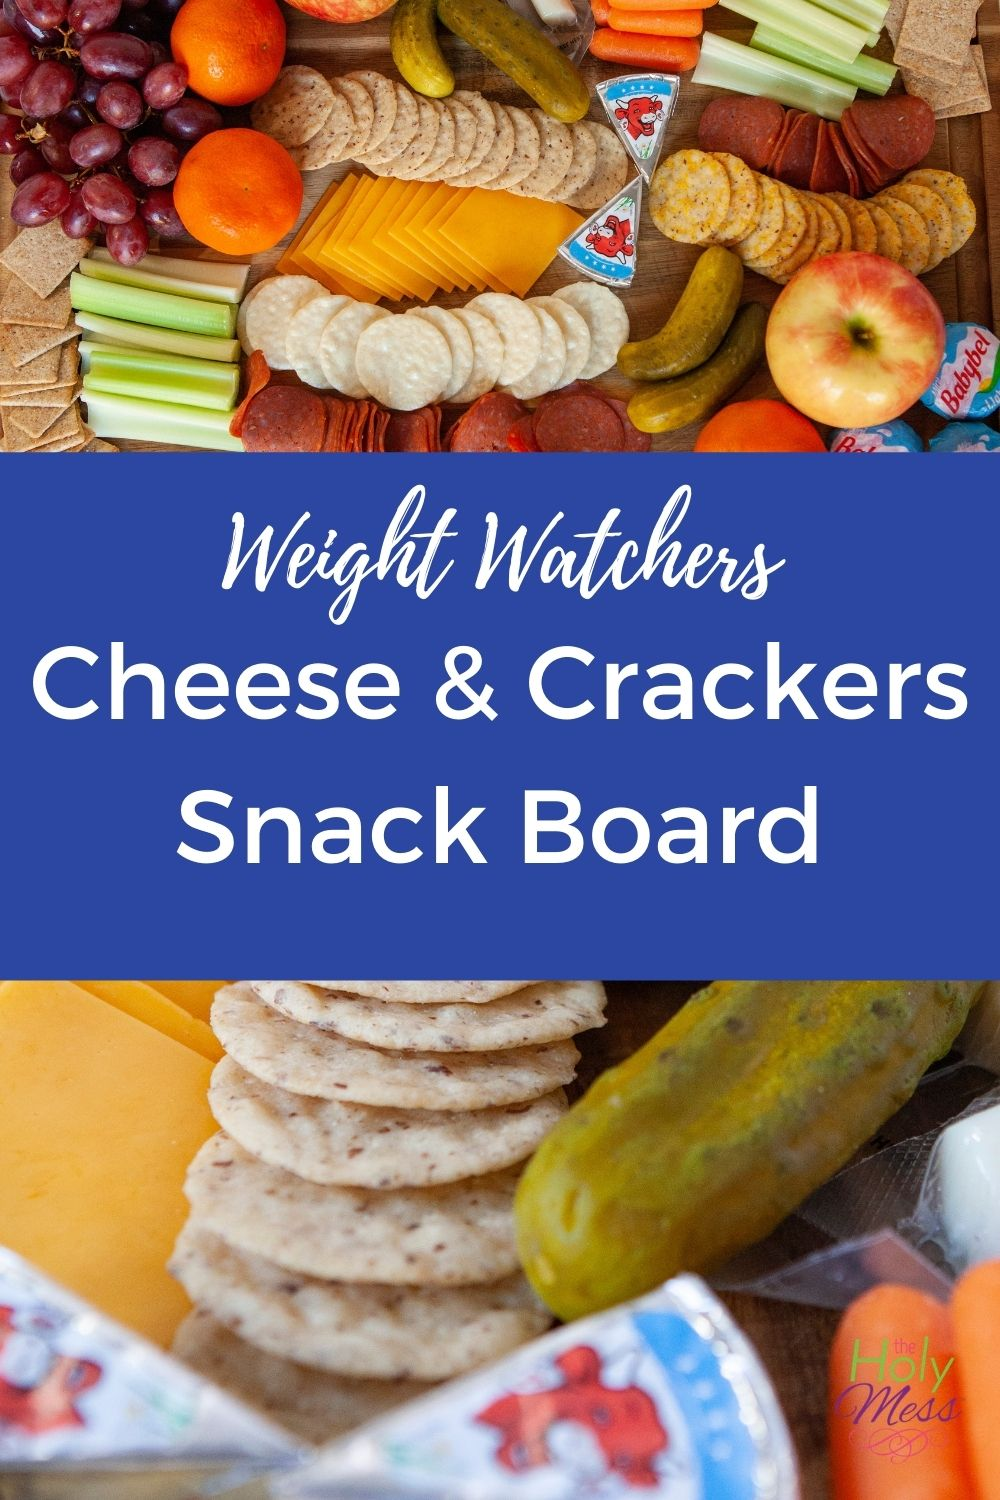 Weight Watchers Cheese and Crackers on board via @foodhussy